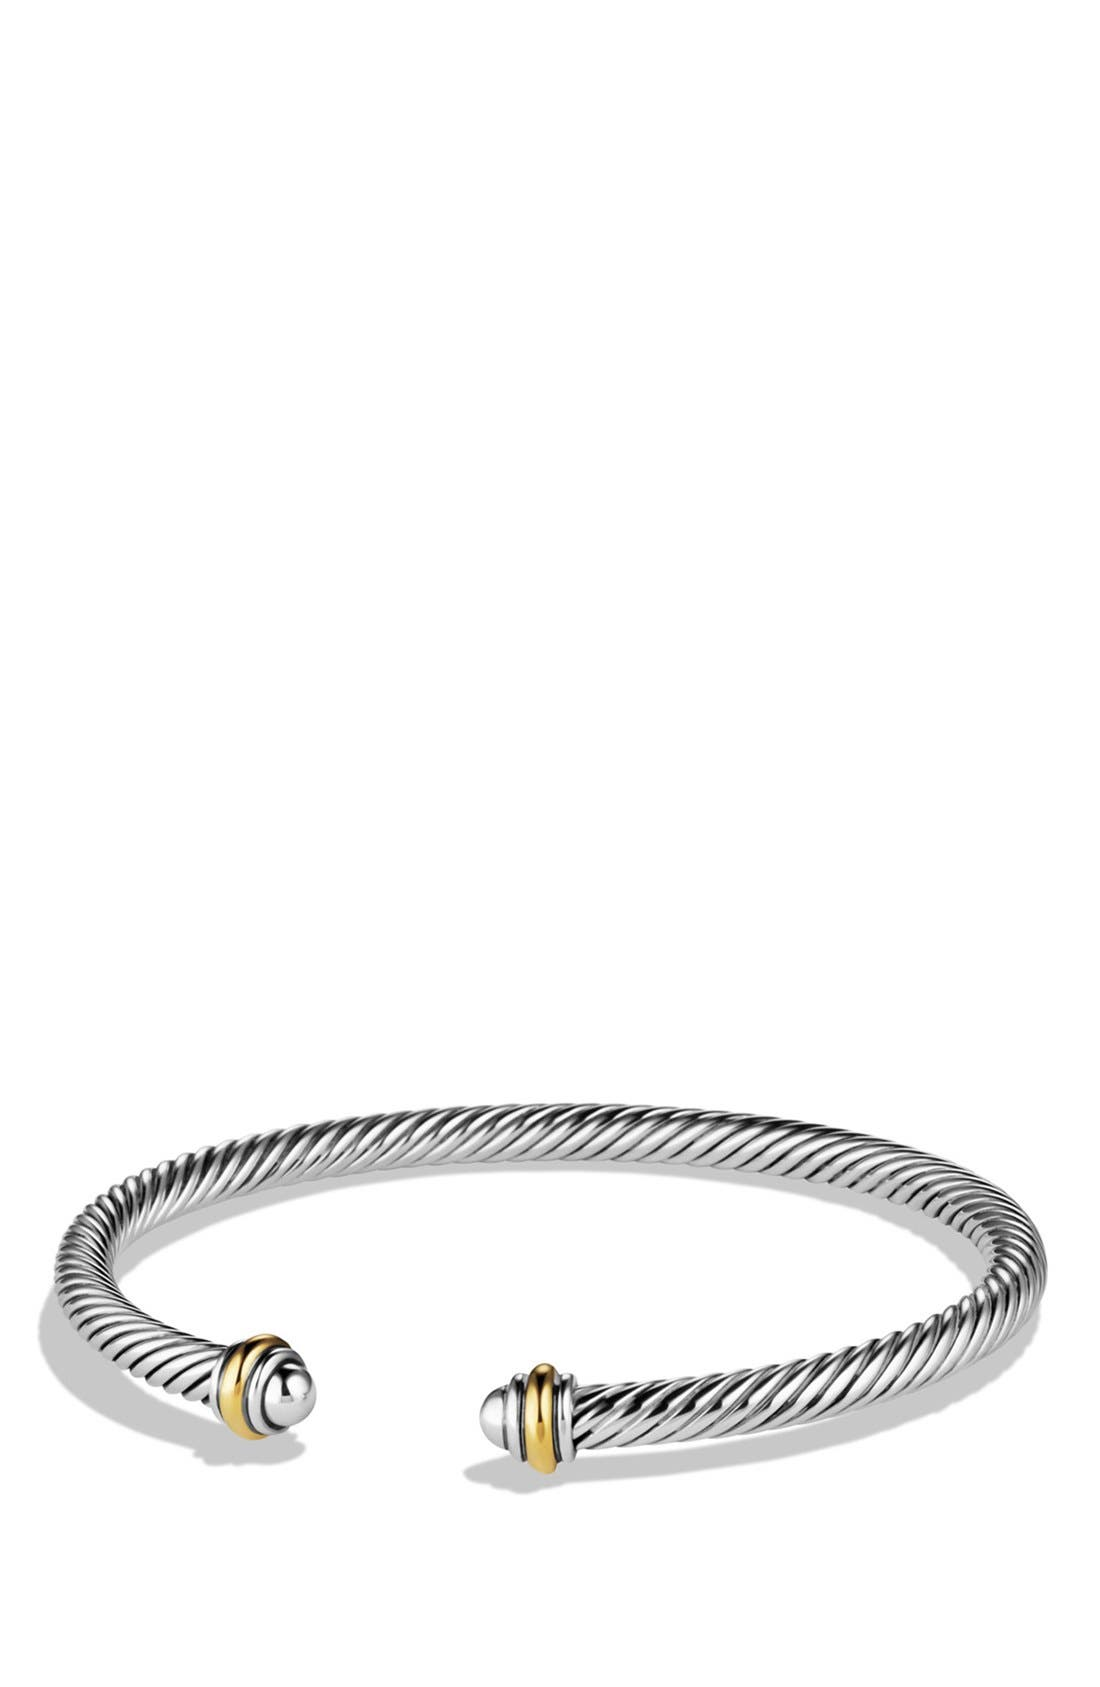 Cable Classics Bracelet with 18K Gold, 4mm,                             Main thumbnail 1, color,                             TWO TONE